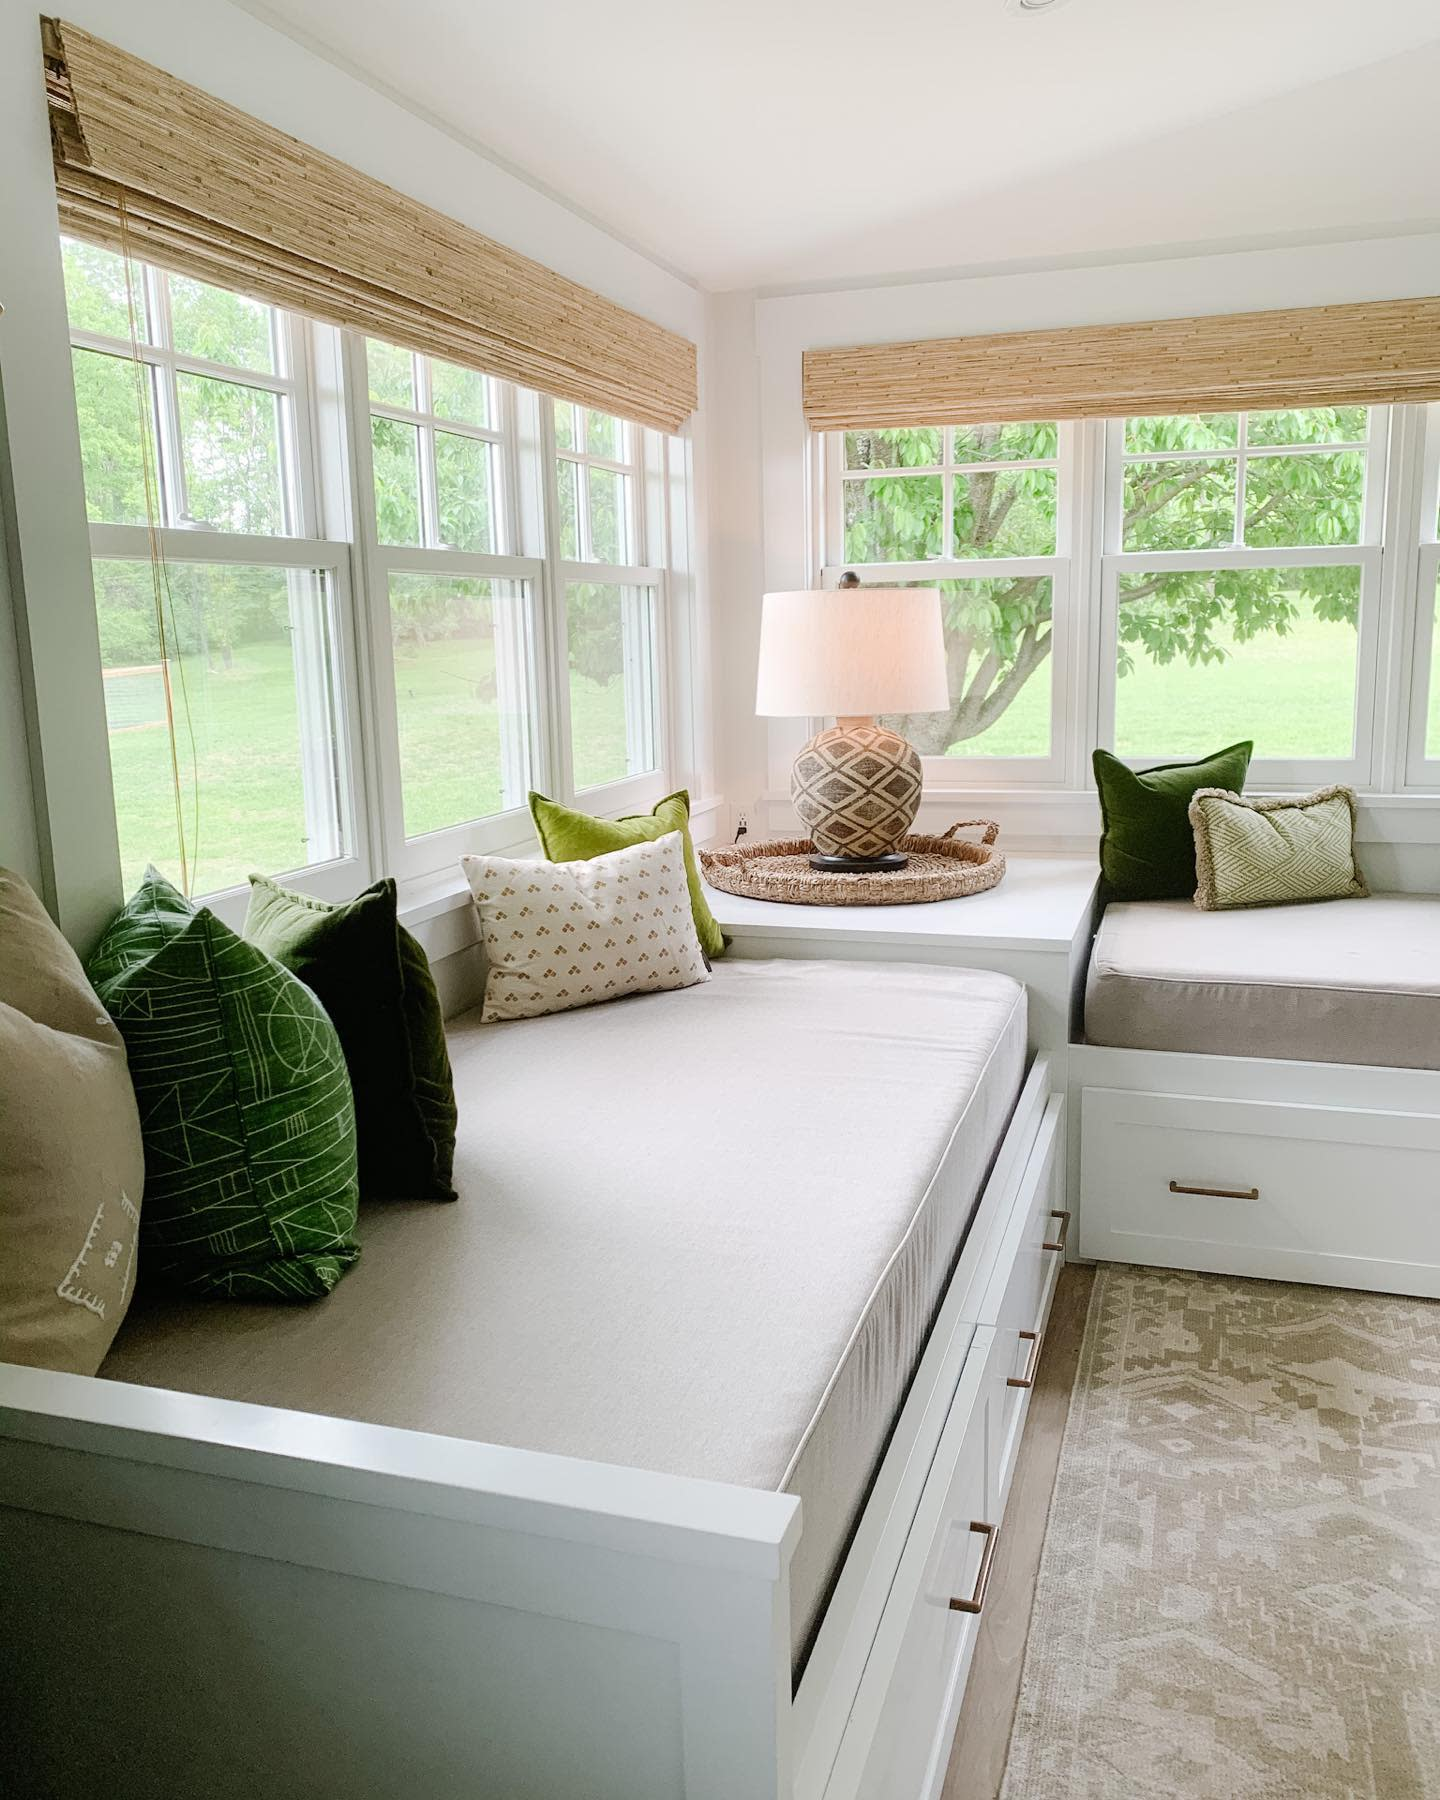 Built-in Daybed Ideas -theaddisonwest